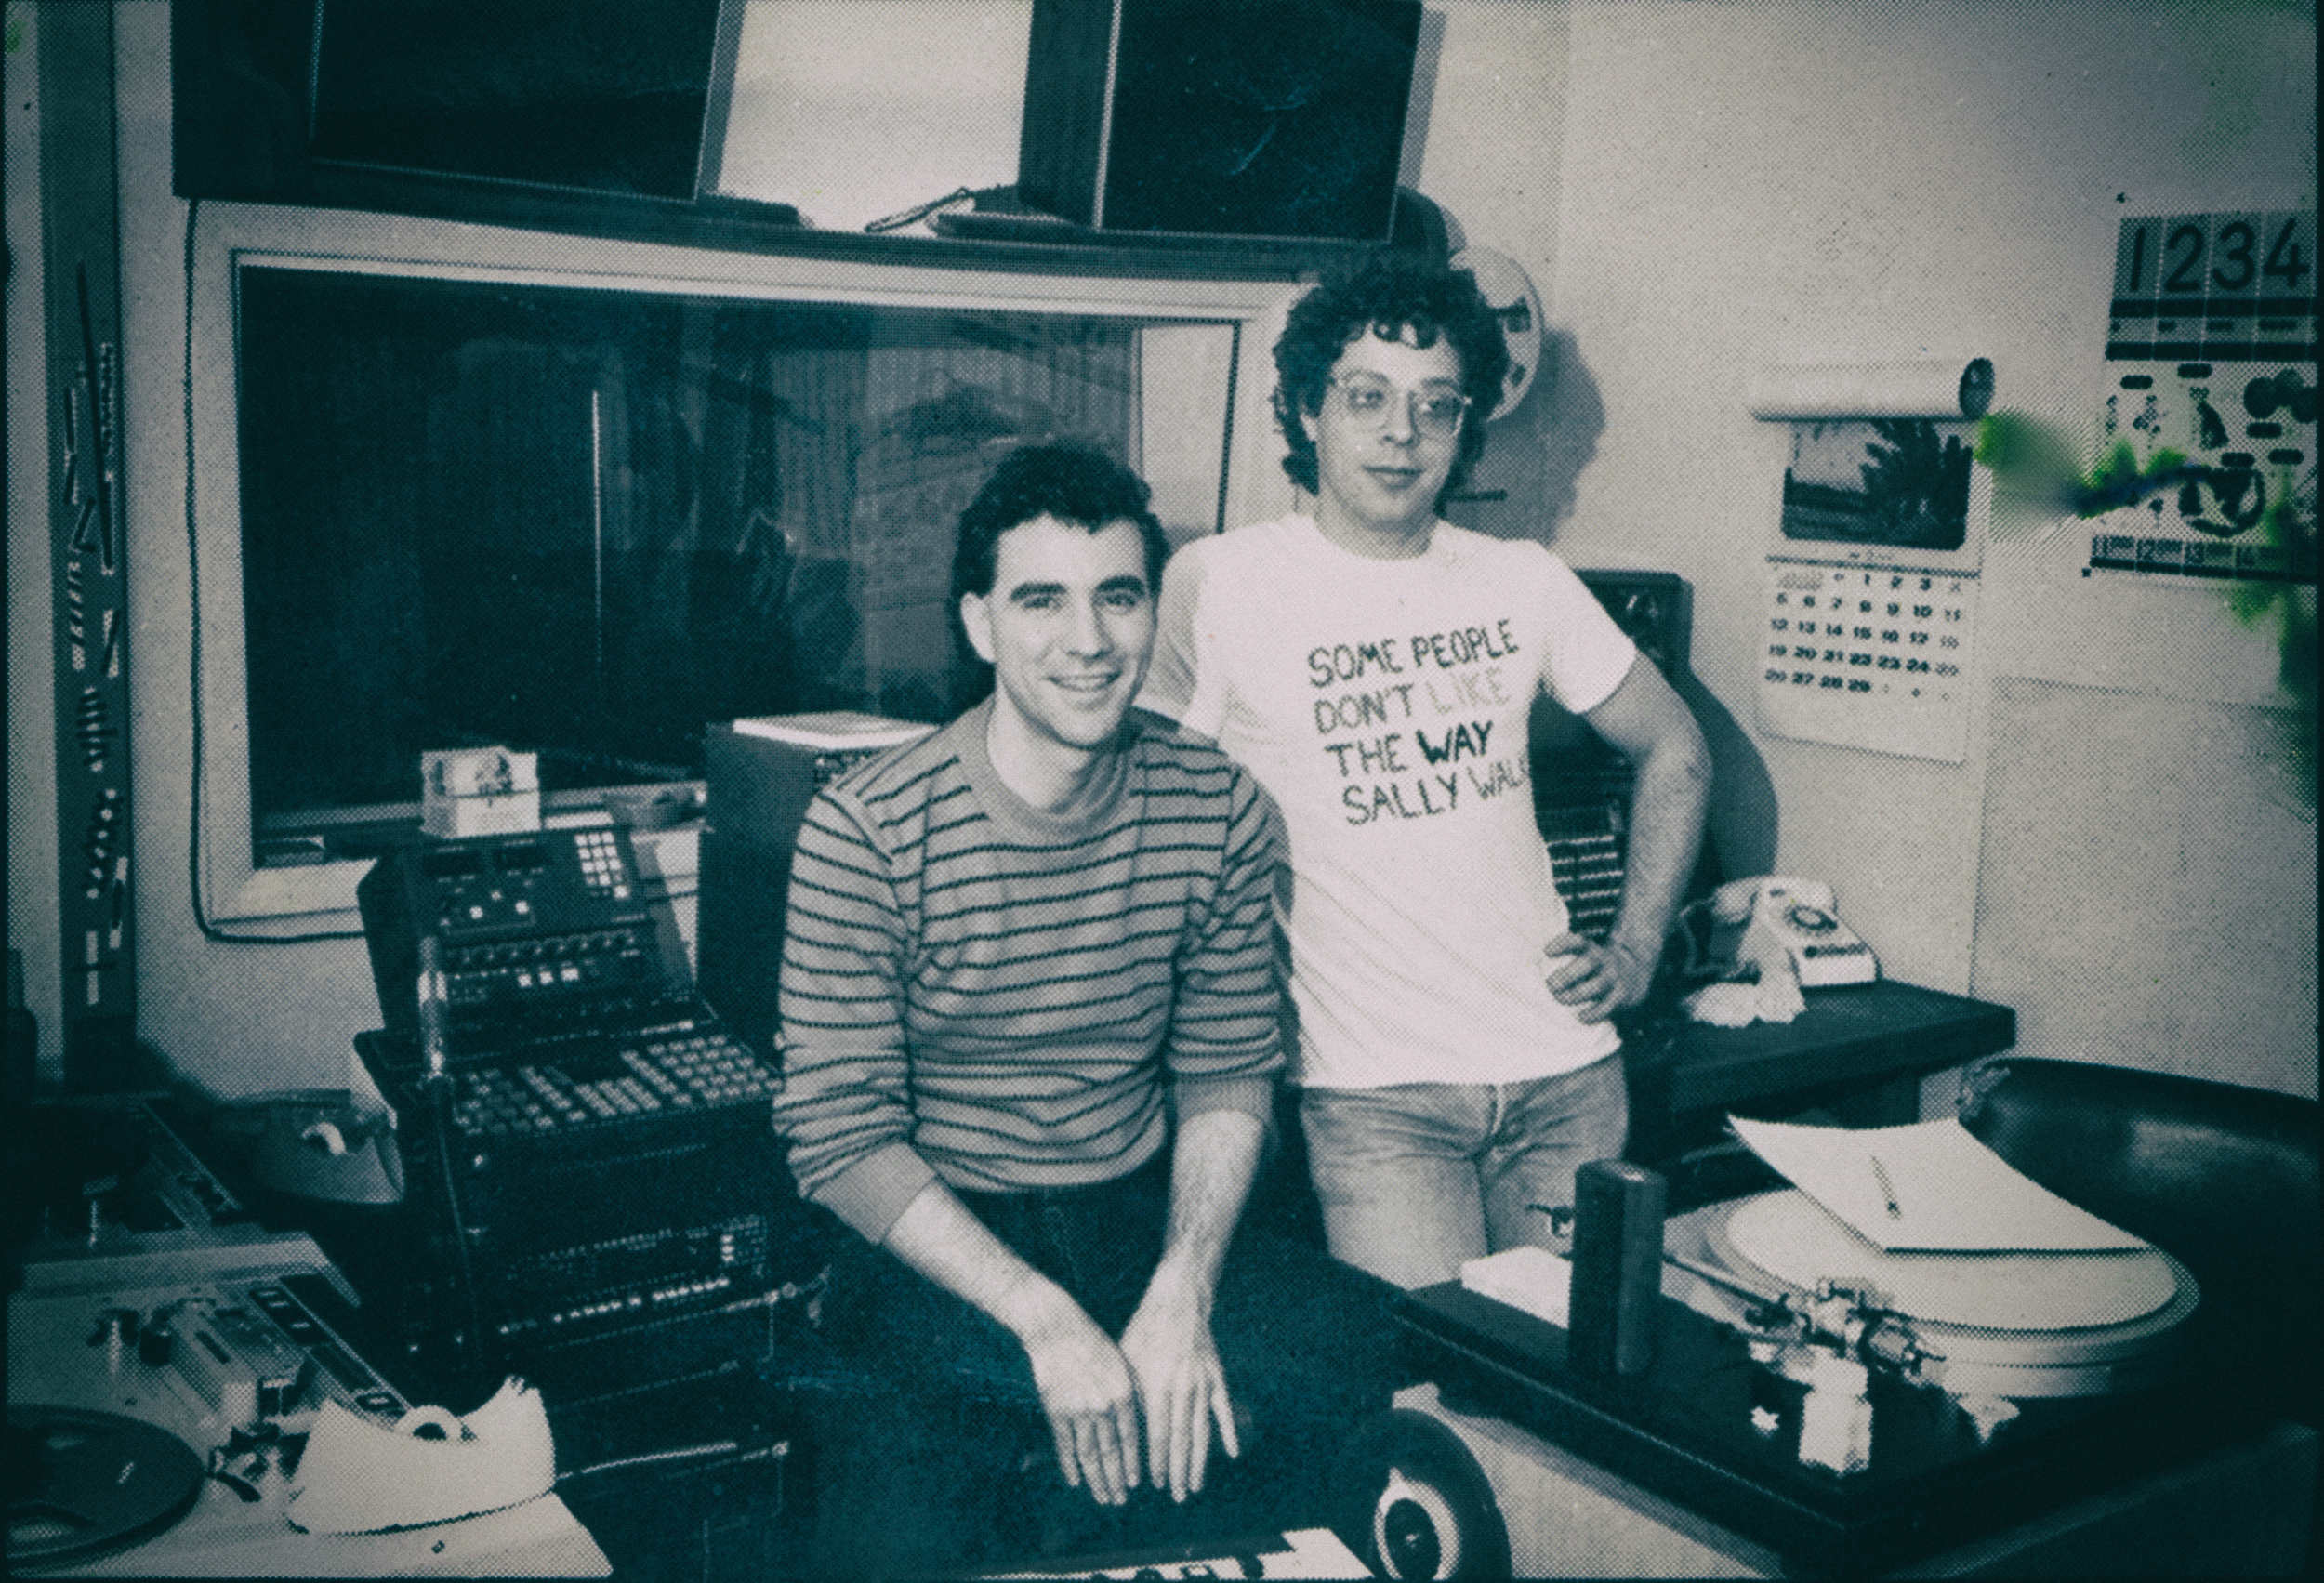 Double Dee and Steinski - 1984 Clack Studio B, NYC